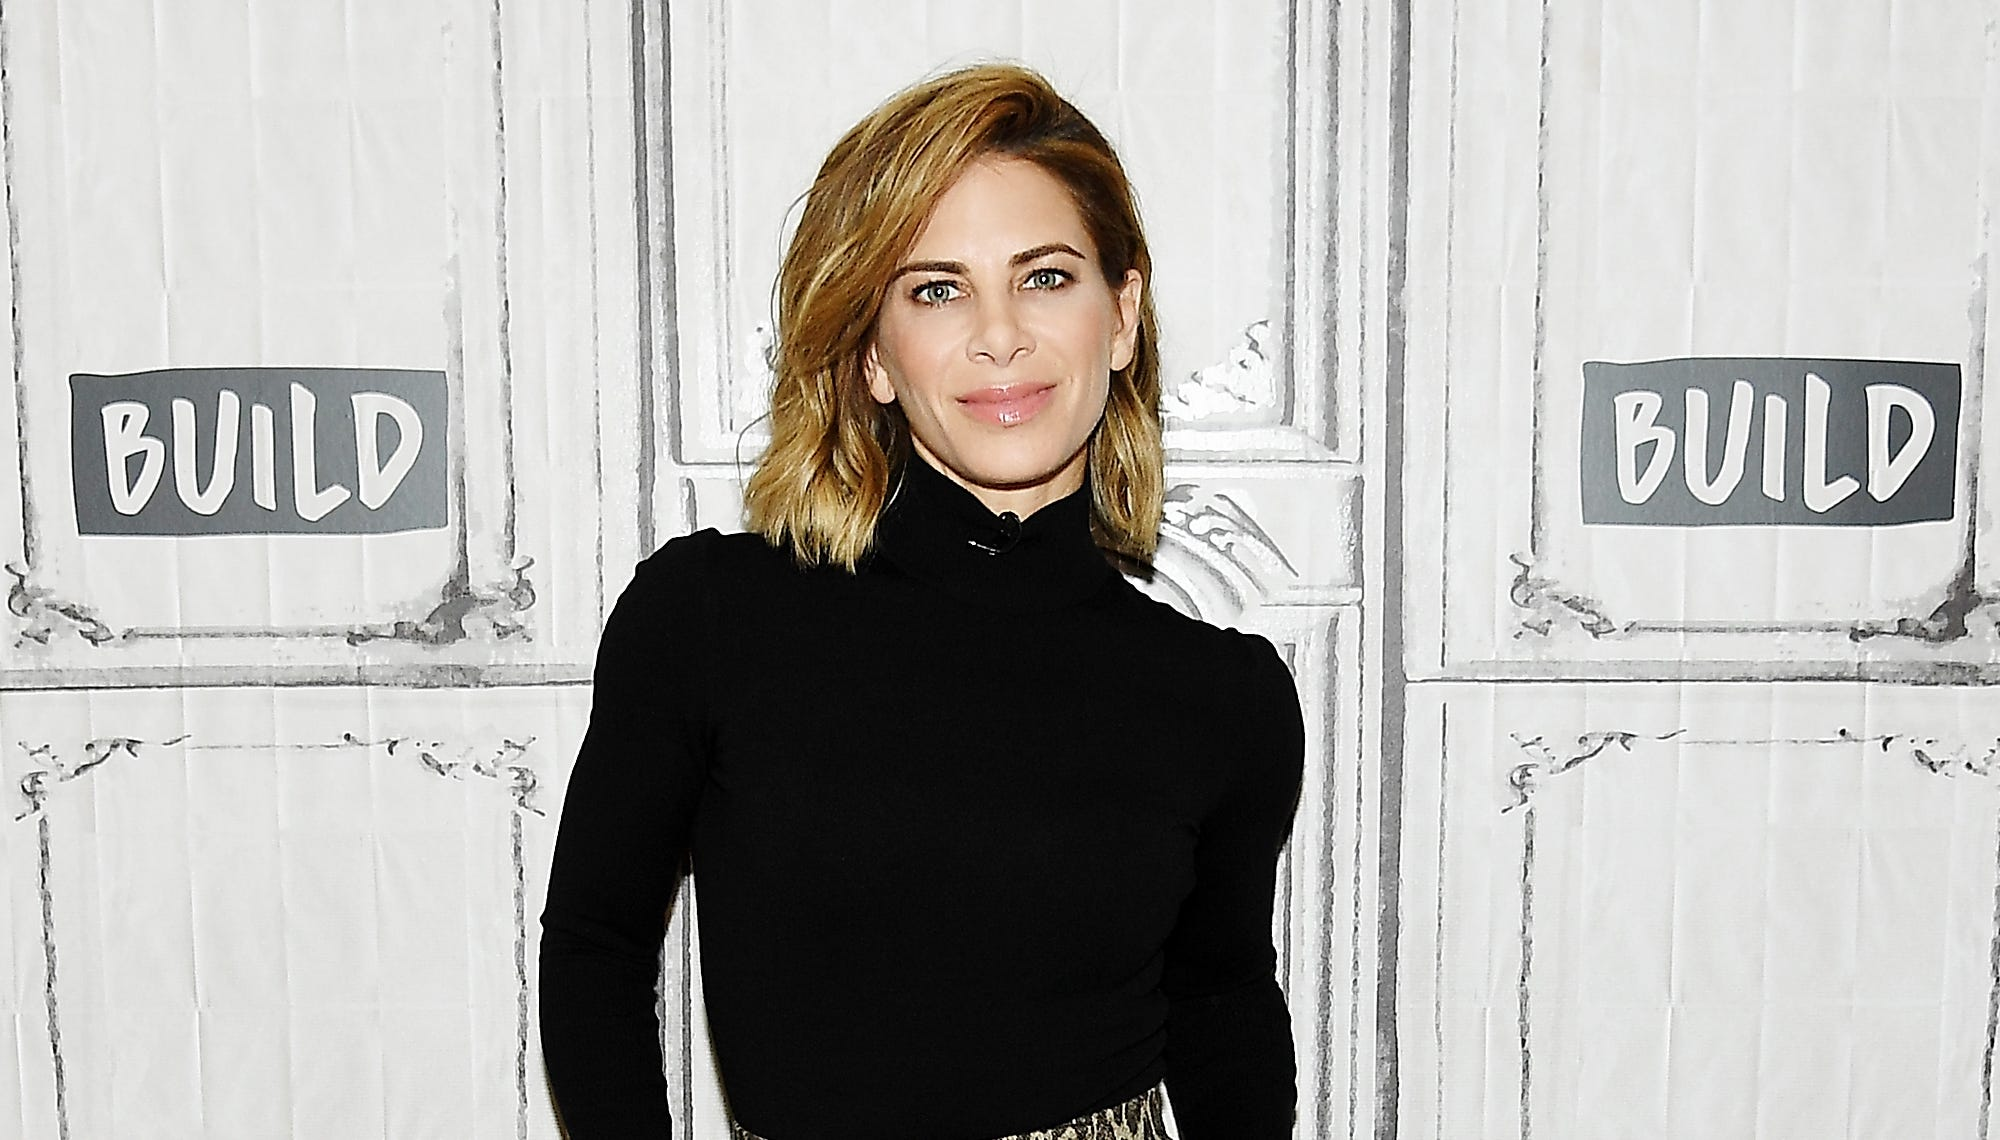 NEW YORK, NY - DECEMBER 18: Jillian Michaels visits Build on December 18, 2018 at Build Studio in New York City. (Photo by Nicholas Hunt/Getty Images) ORG XMIT: 775100428 ORIG FILE ID: 1074365632